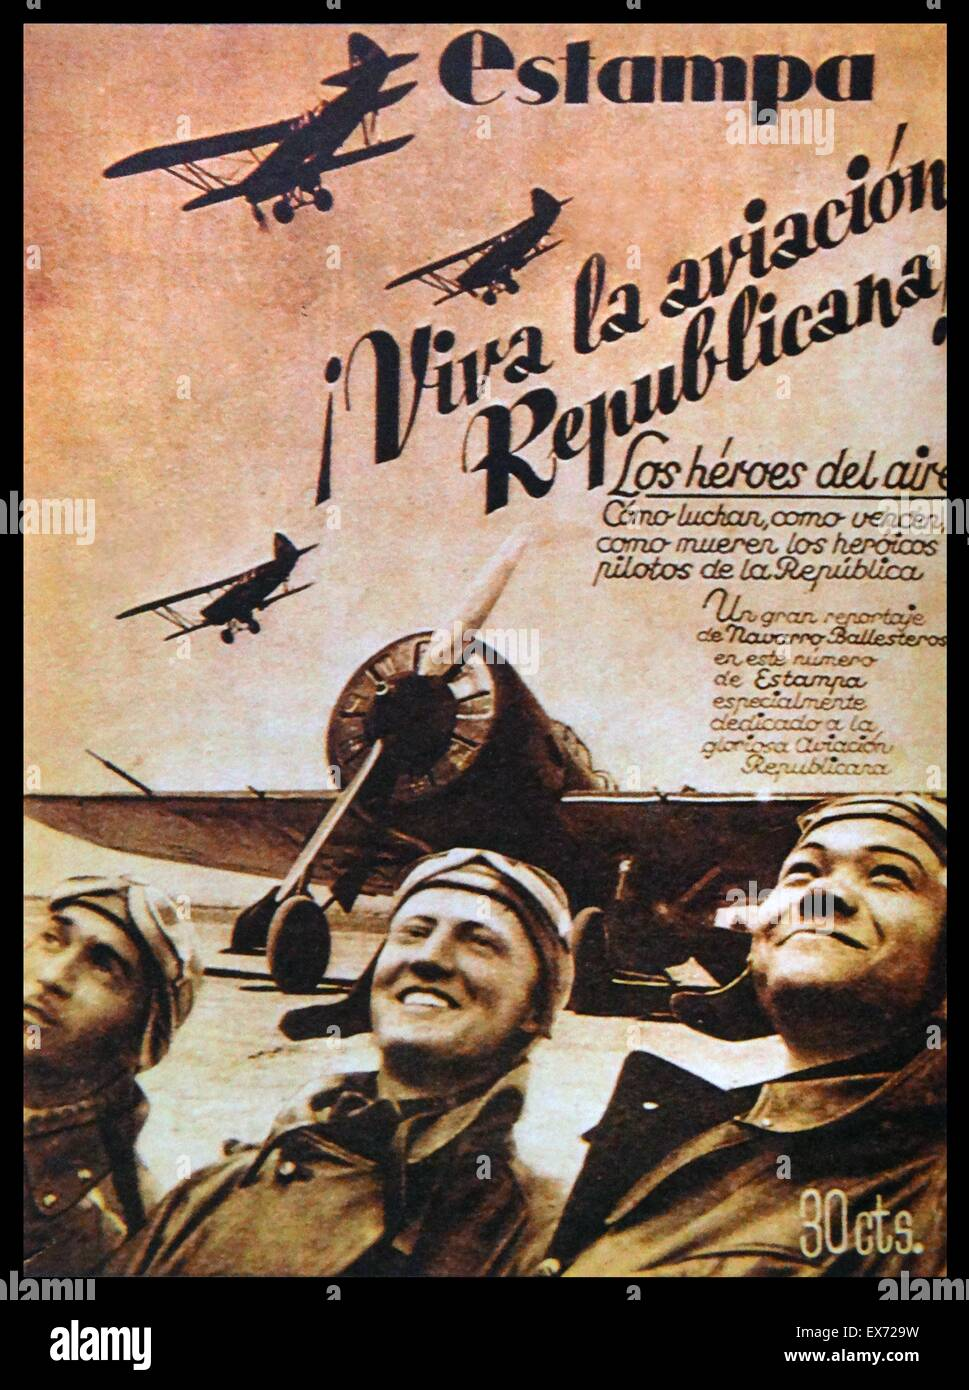 Publication praising the Republican air force during the Spanish Civil War - Stock Image